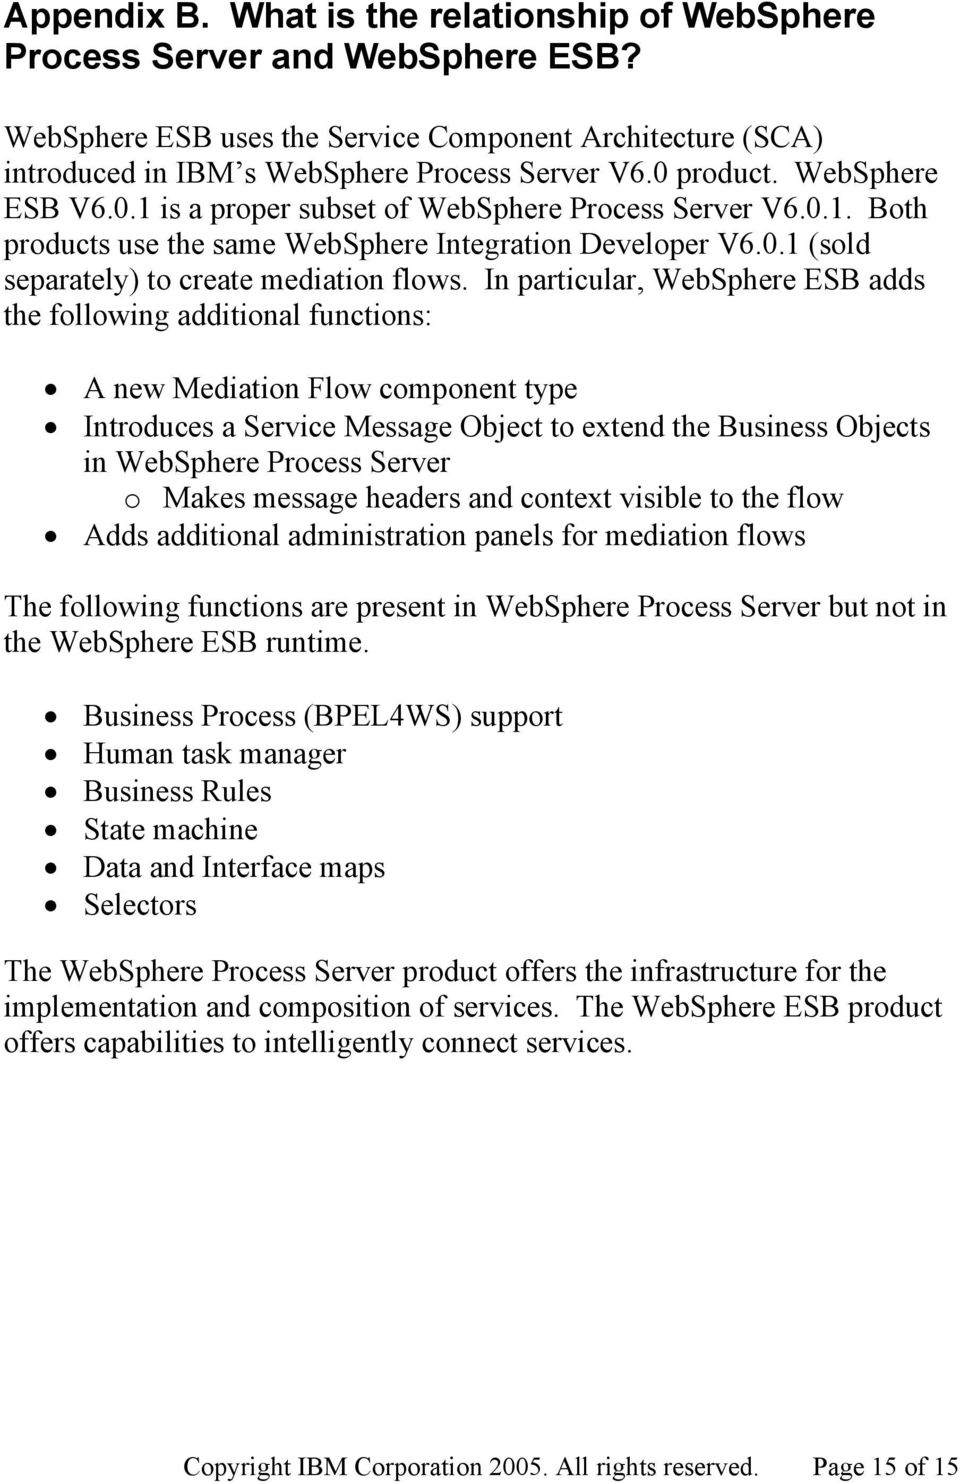 In particular, WebSphere ESB adds the following additional functions: A new Mediation Flow component type Introduces a Service Message Object to extend the Business Objects in WebSphere Process